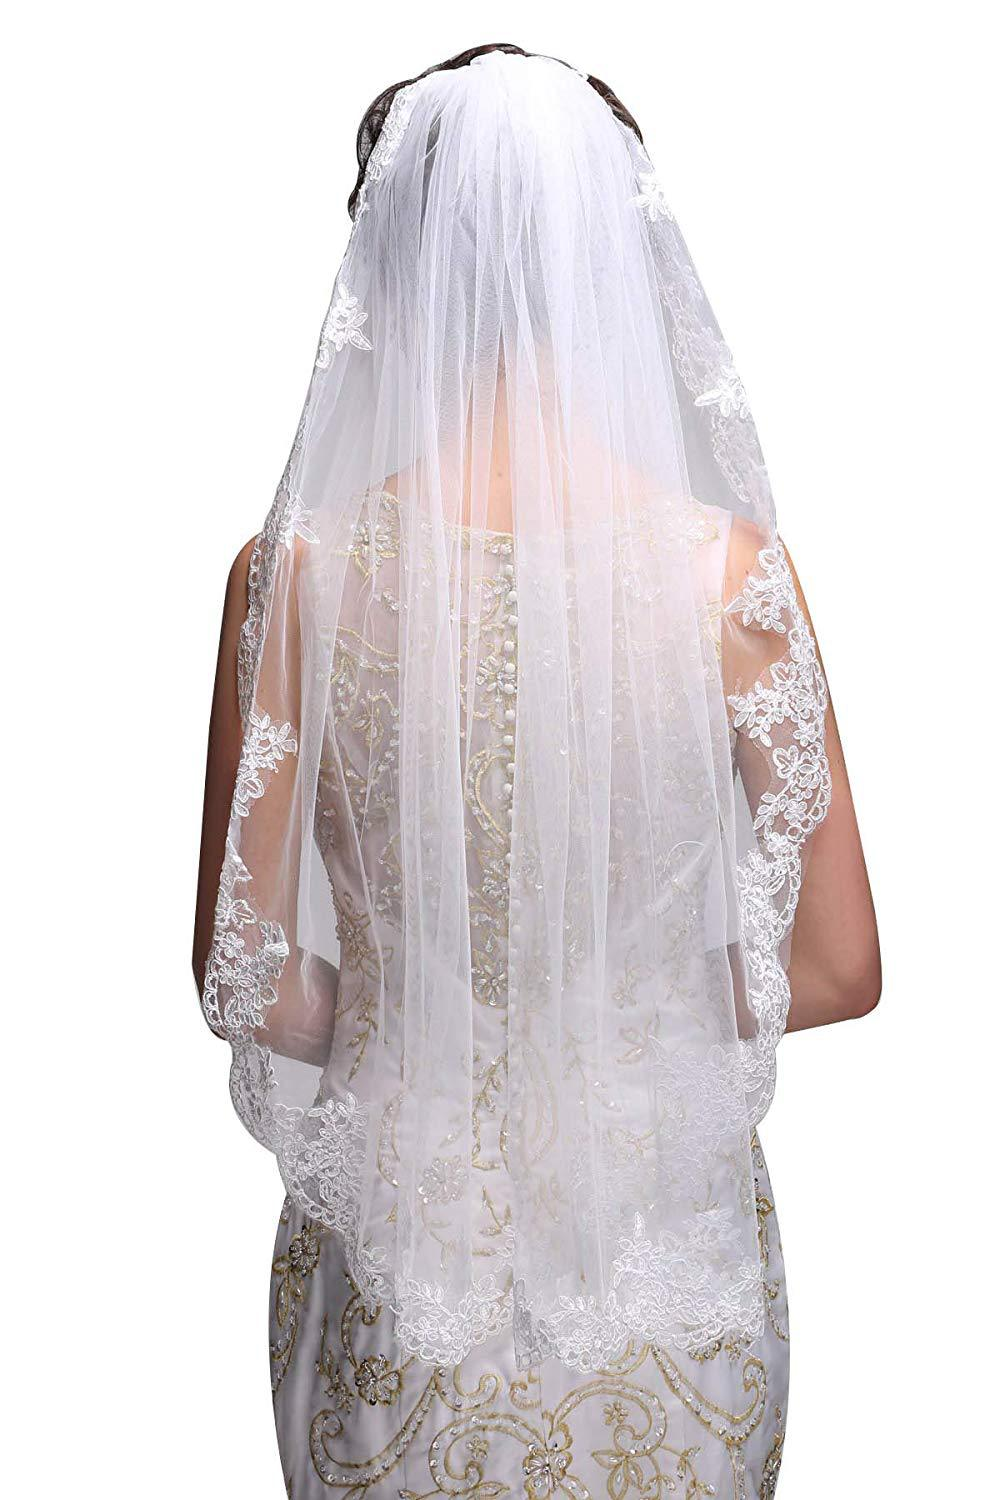 White/Ivory Wedding Veil Short Bridal Veil Head Veil Wedding Accessories 2021